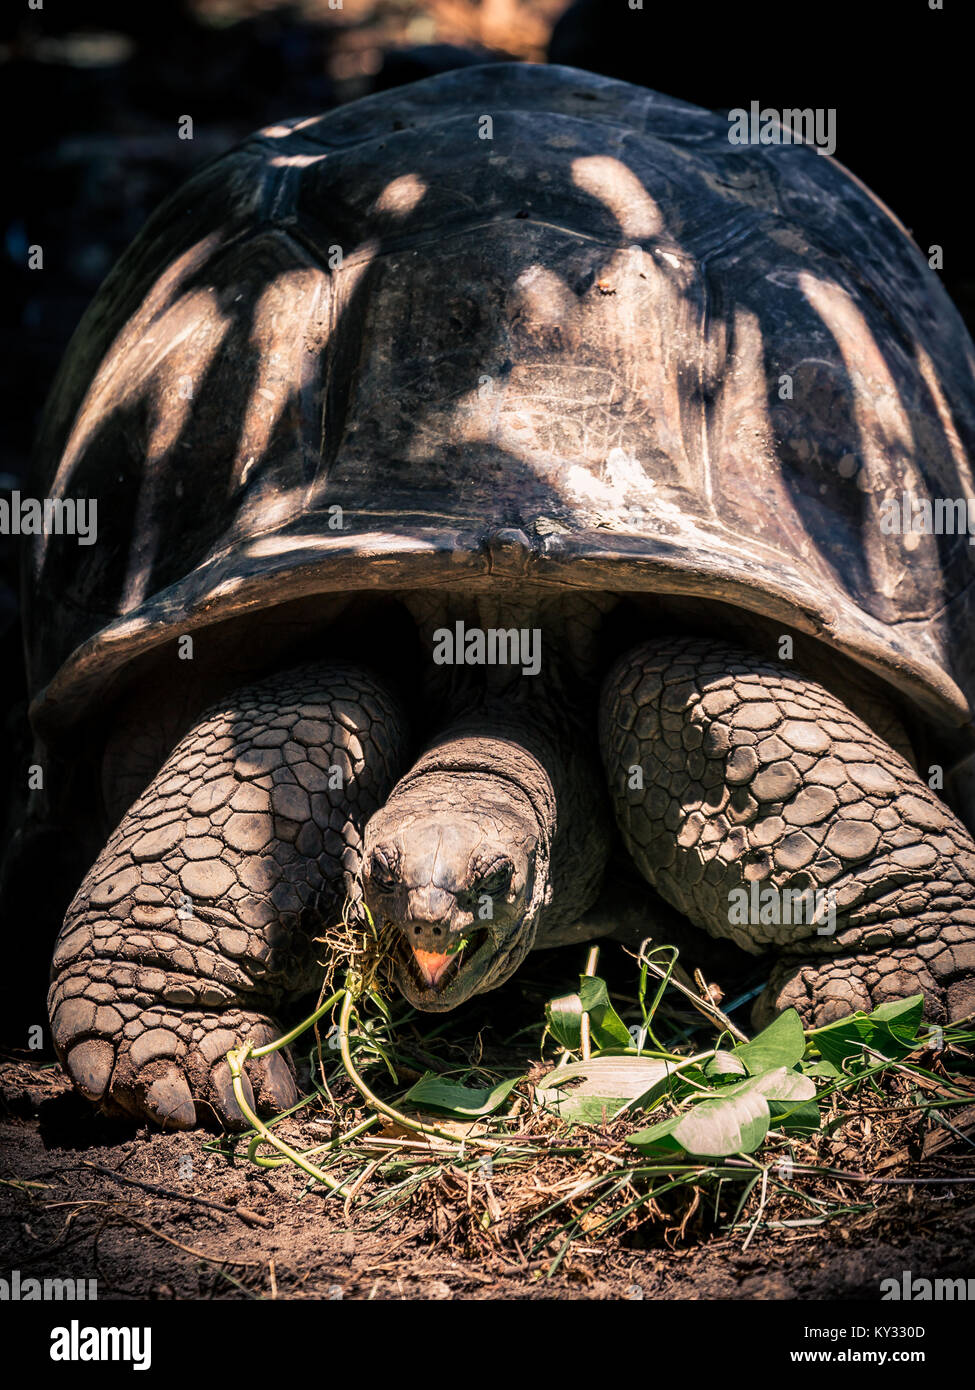 Giant Tortoise with open mouth - Stock Image